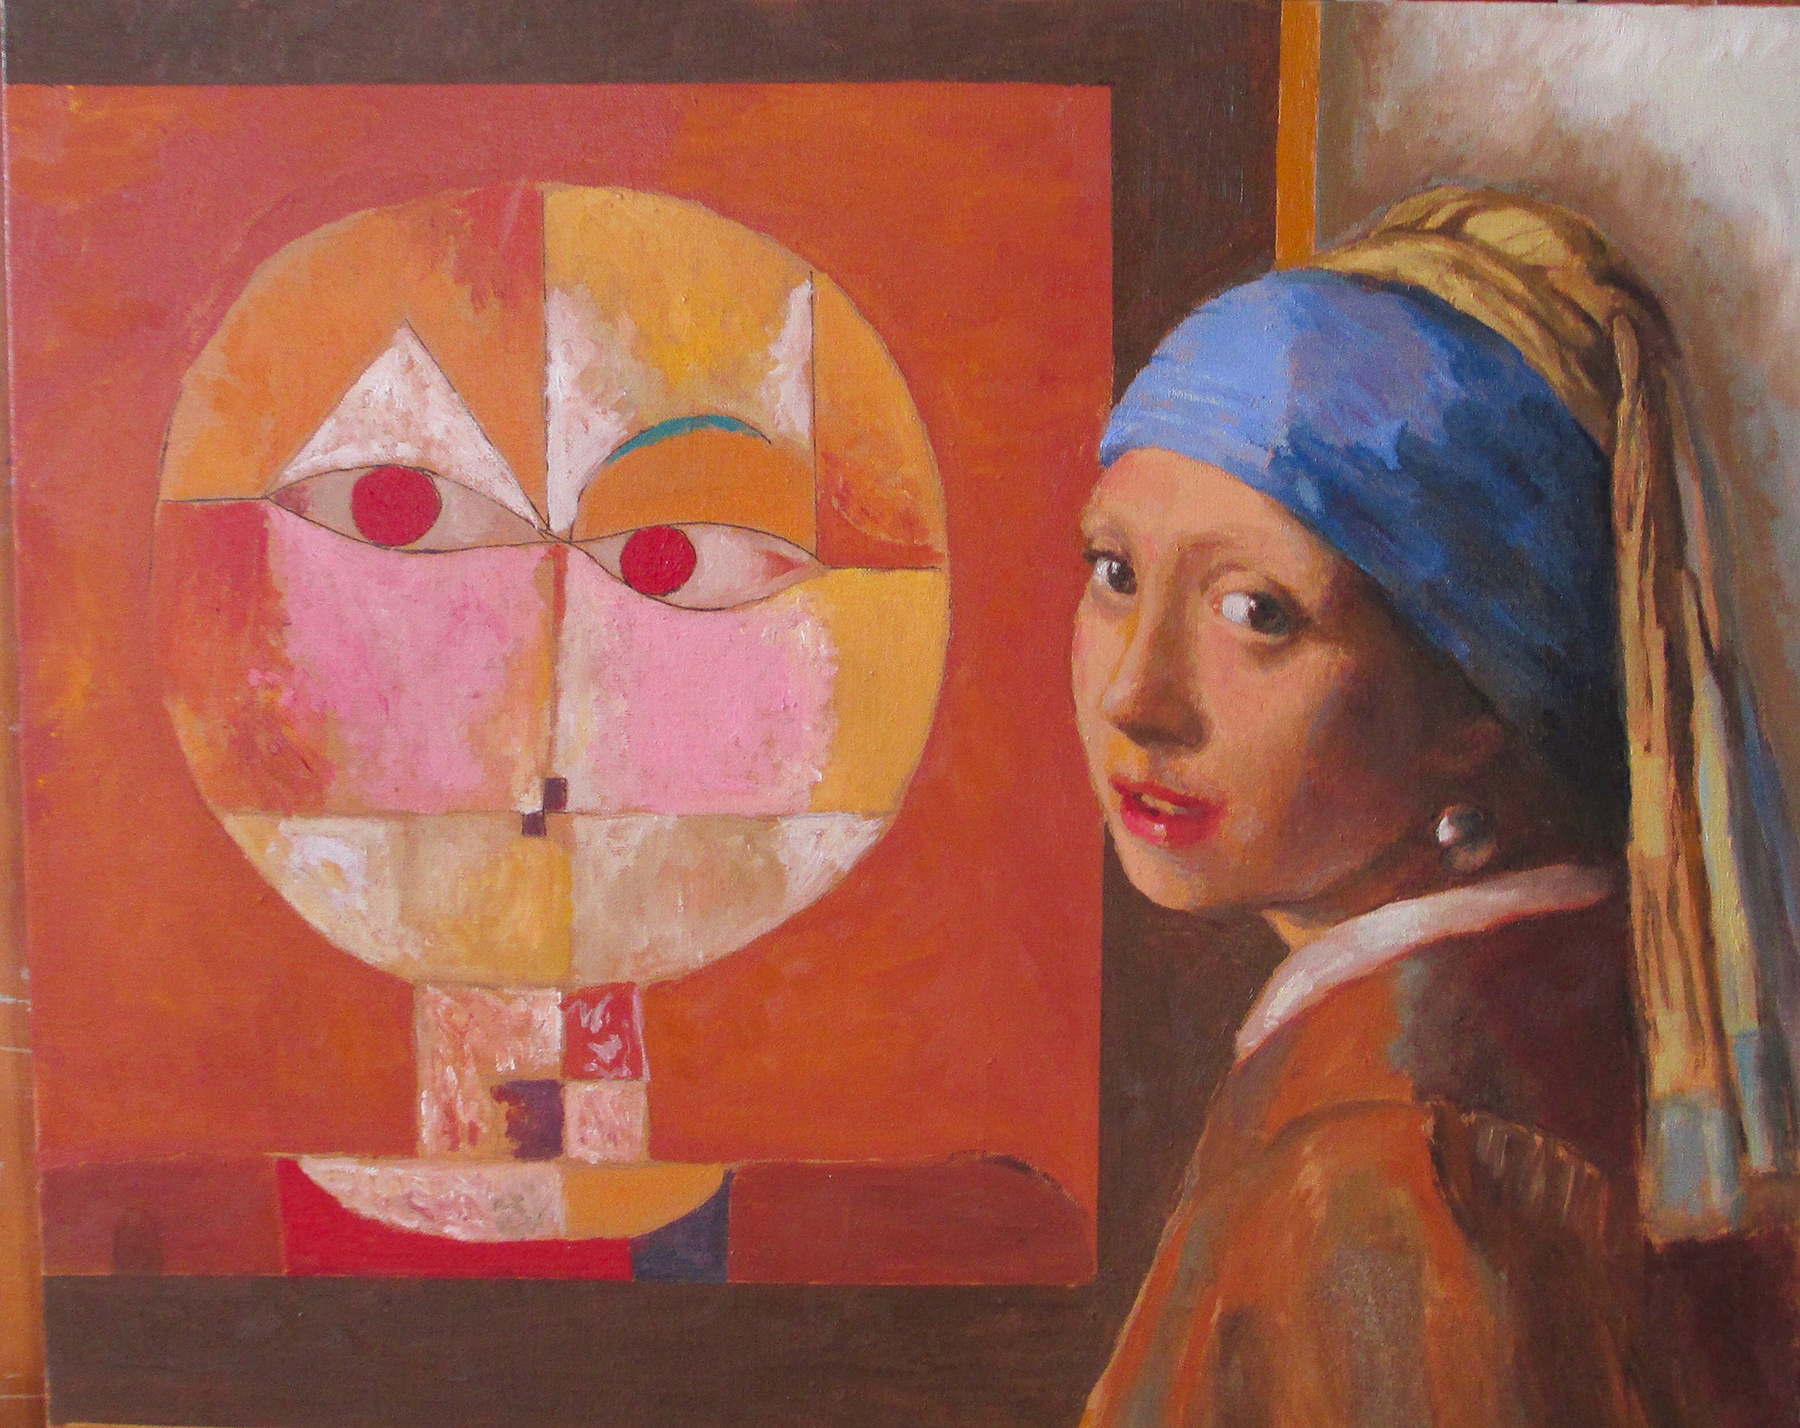 Docent at Basel Art Museum (after Klee, Vermeer)   Oil on canvas 20 x 24 in